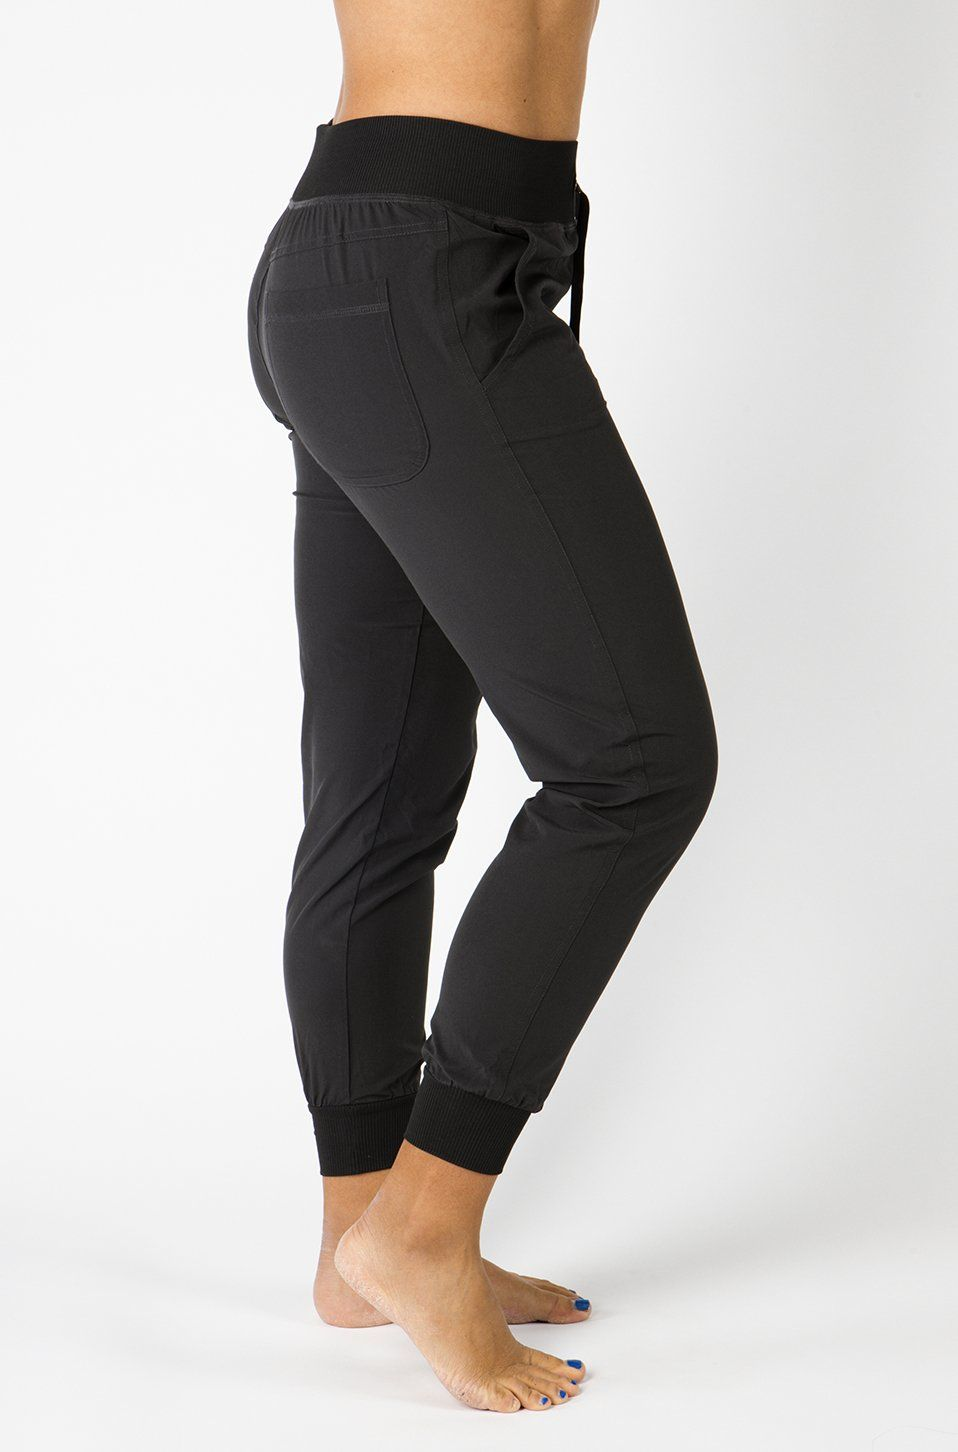 Athletic joggers in 2020 joggers athletic how to wear